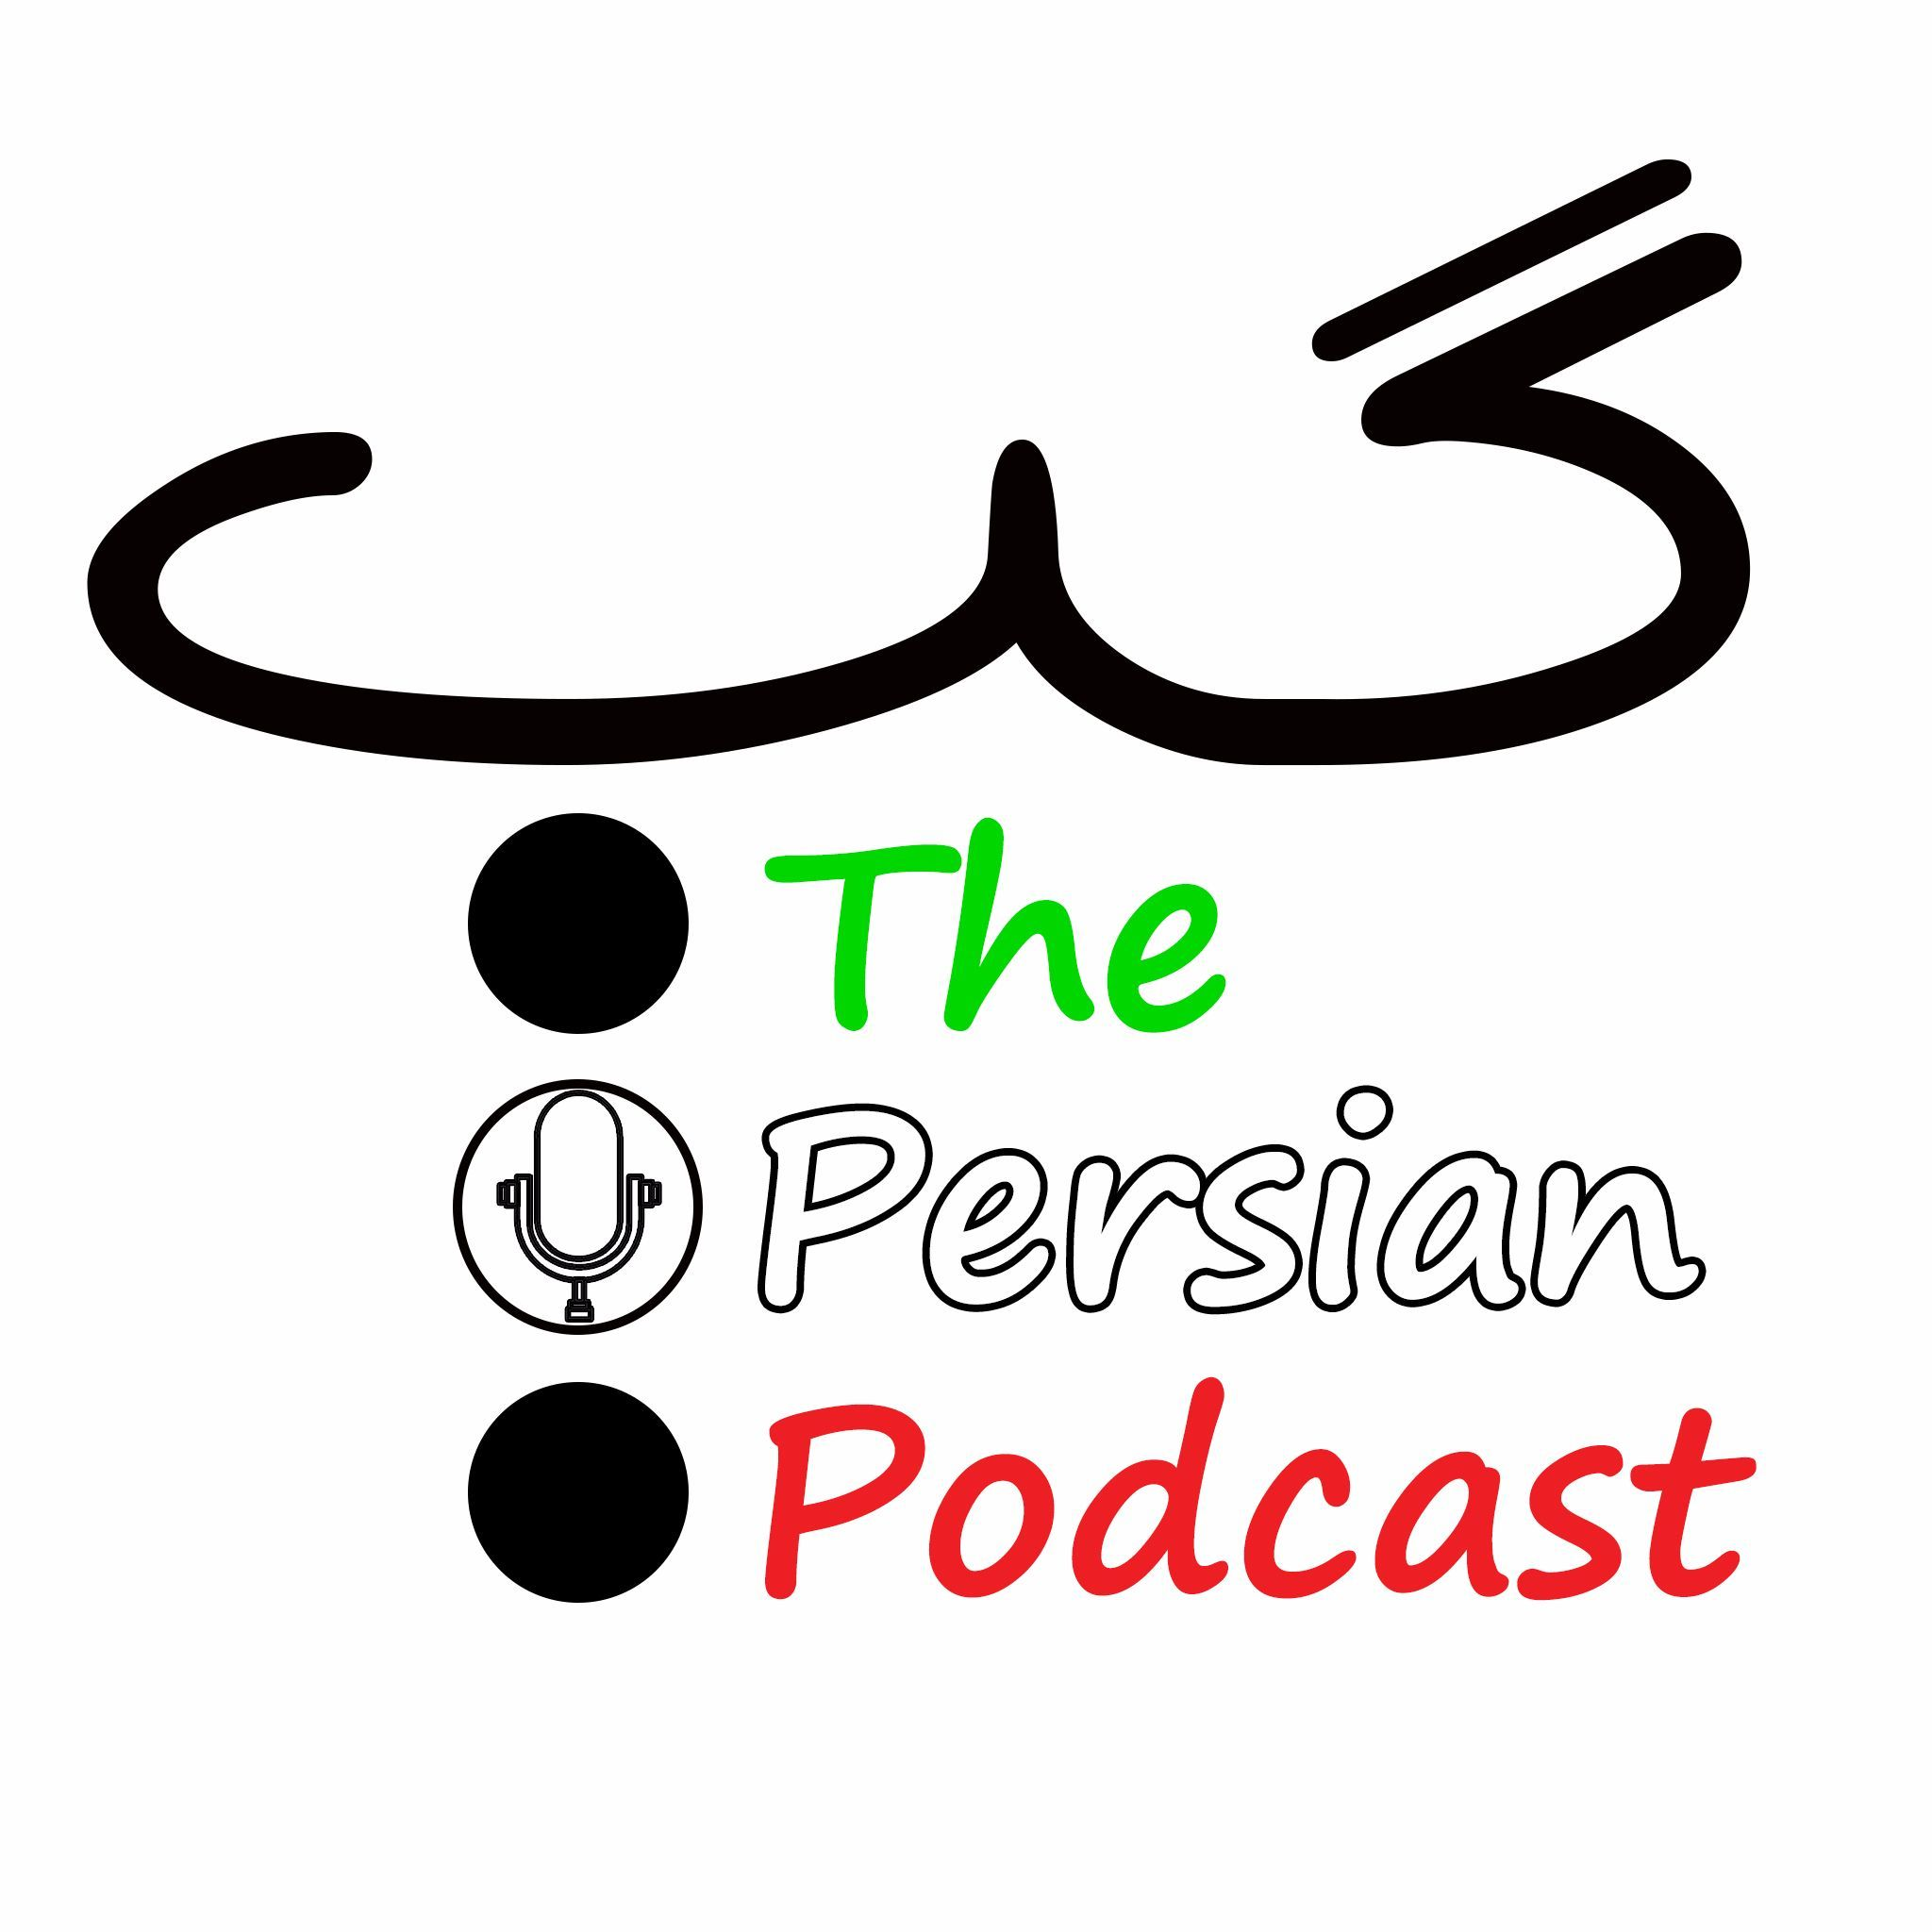 Episode Quarter To 1 (About Your Podcast)